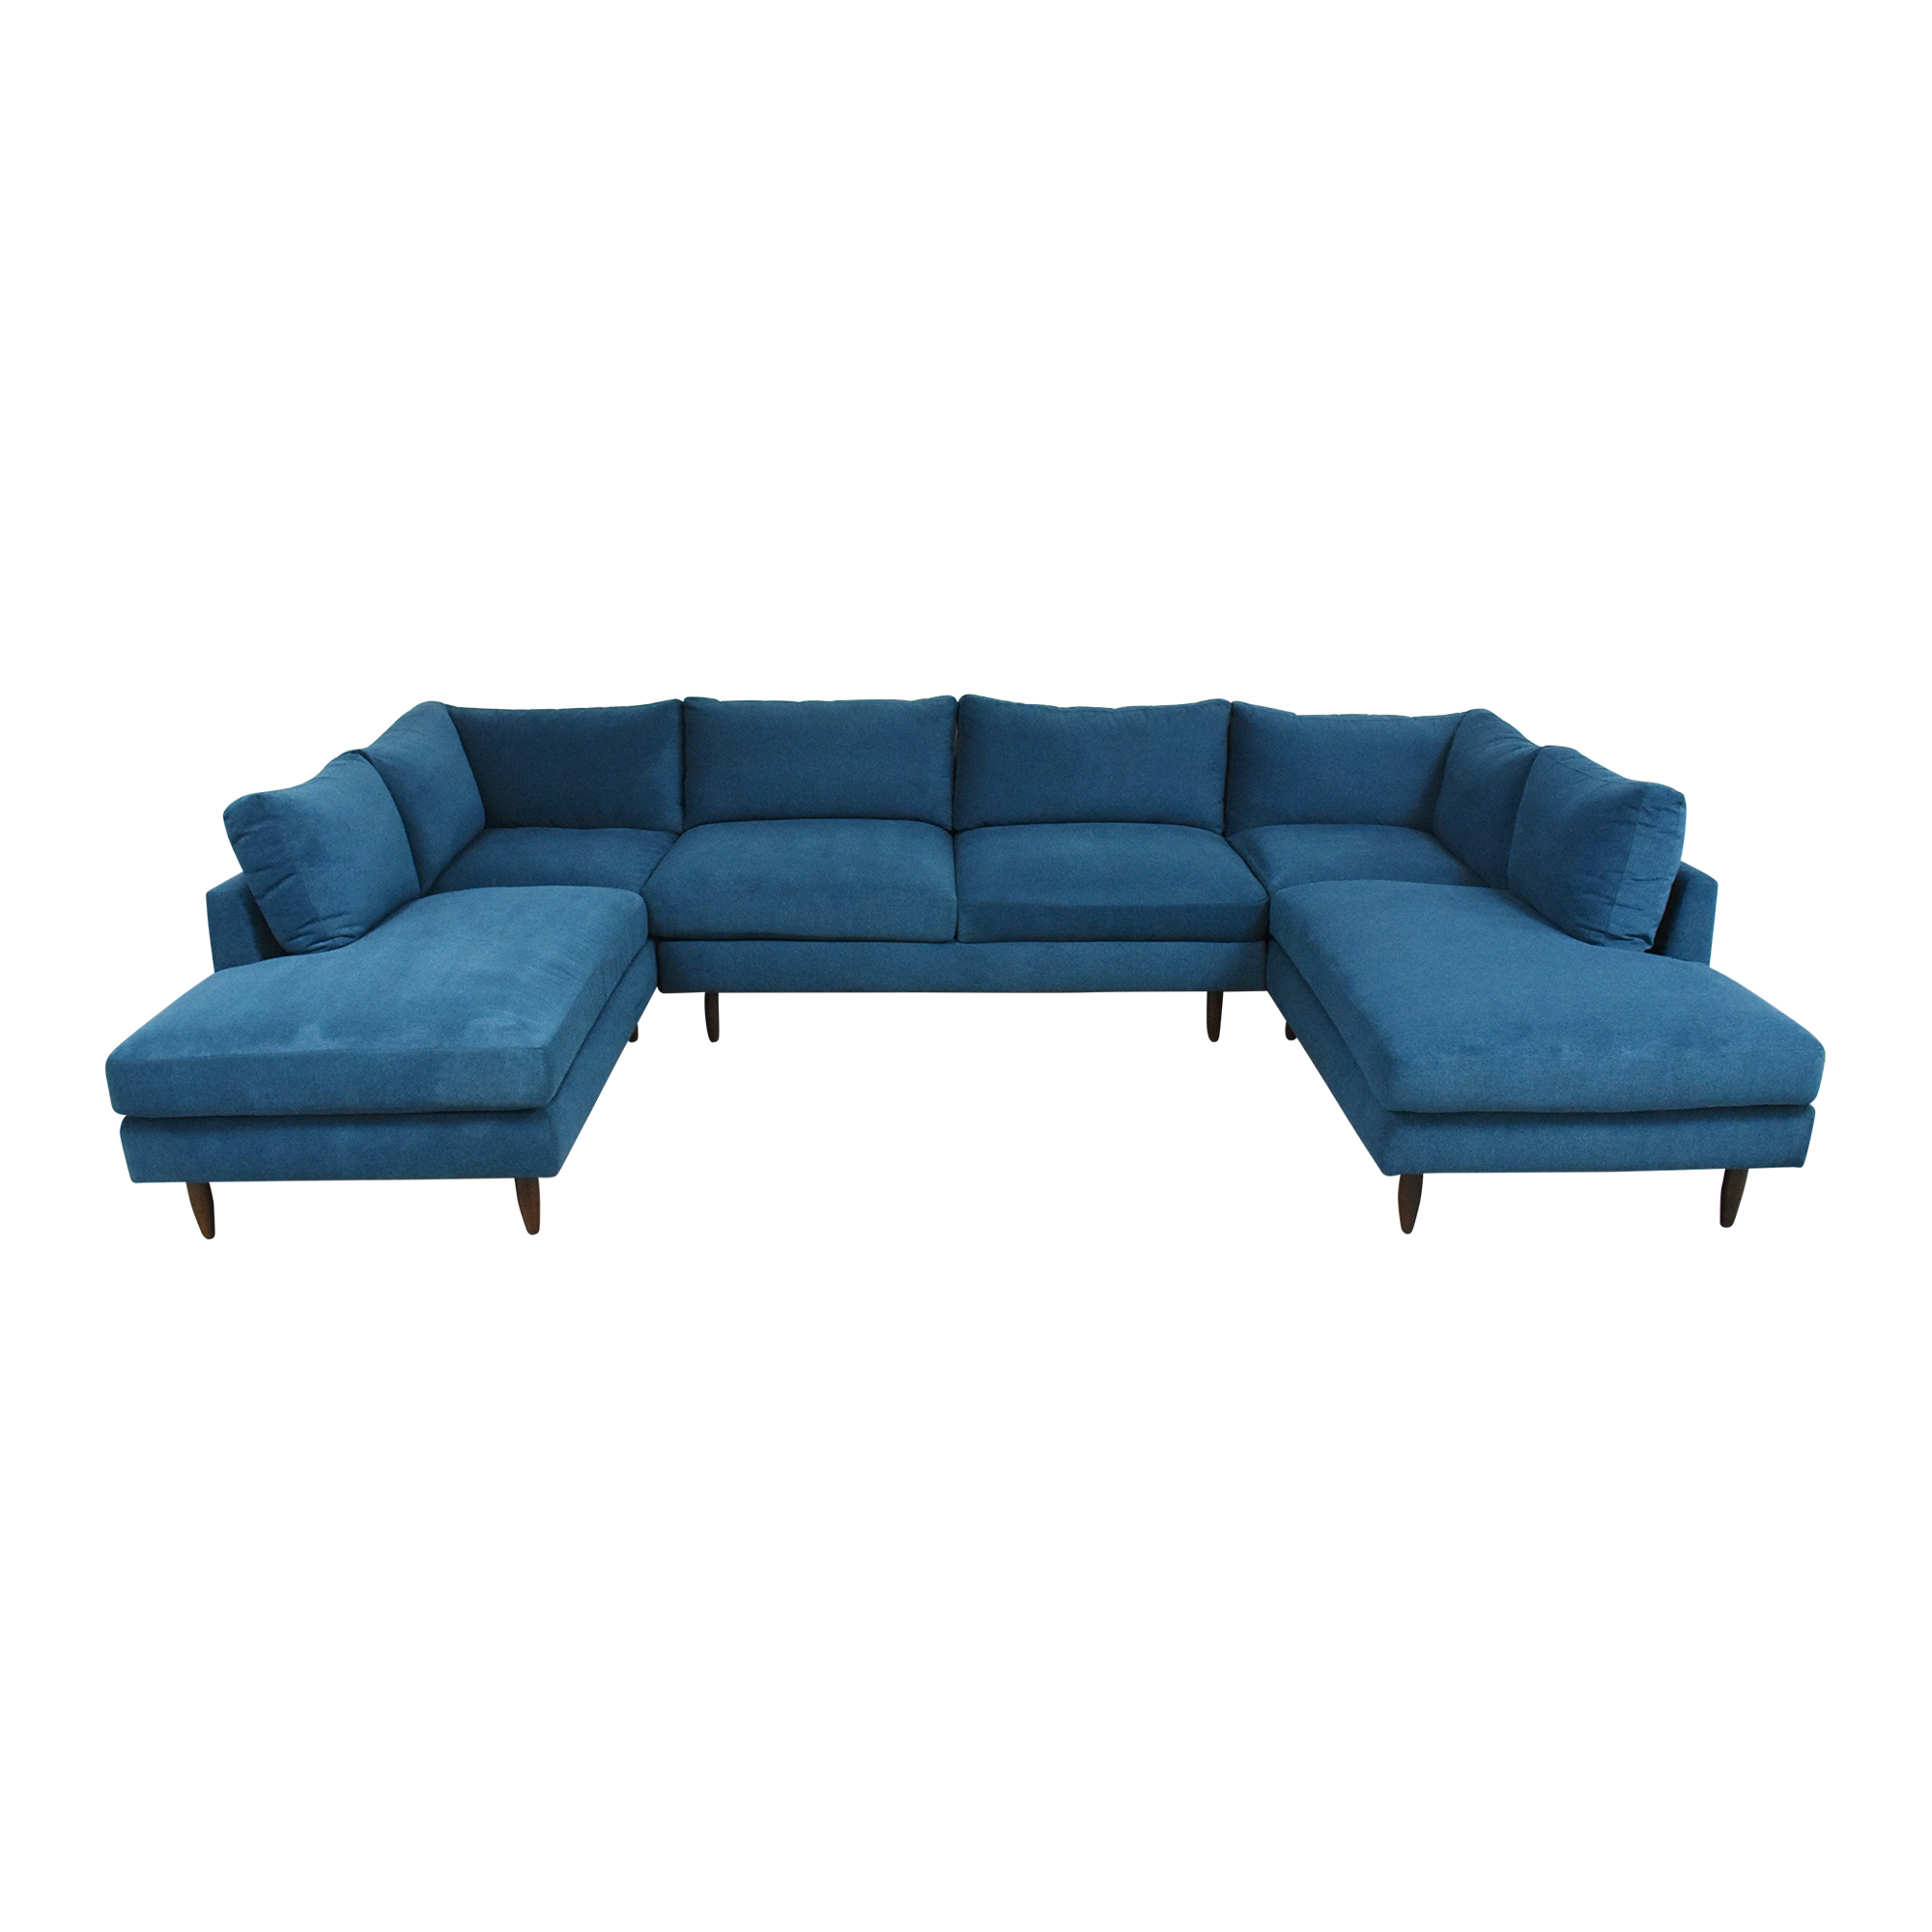 shop BenchMade Modern Crowd Pleaser Double Chaise Sectional U Sofa BenchMade Modern